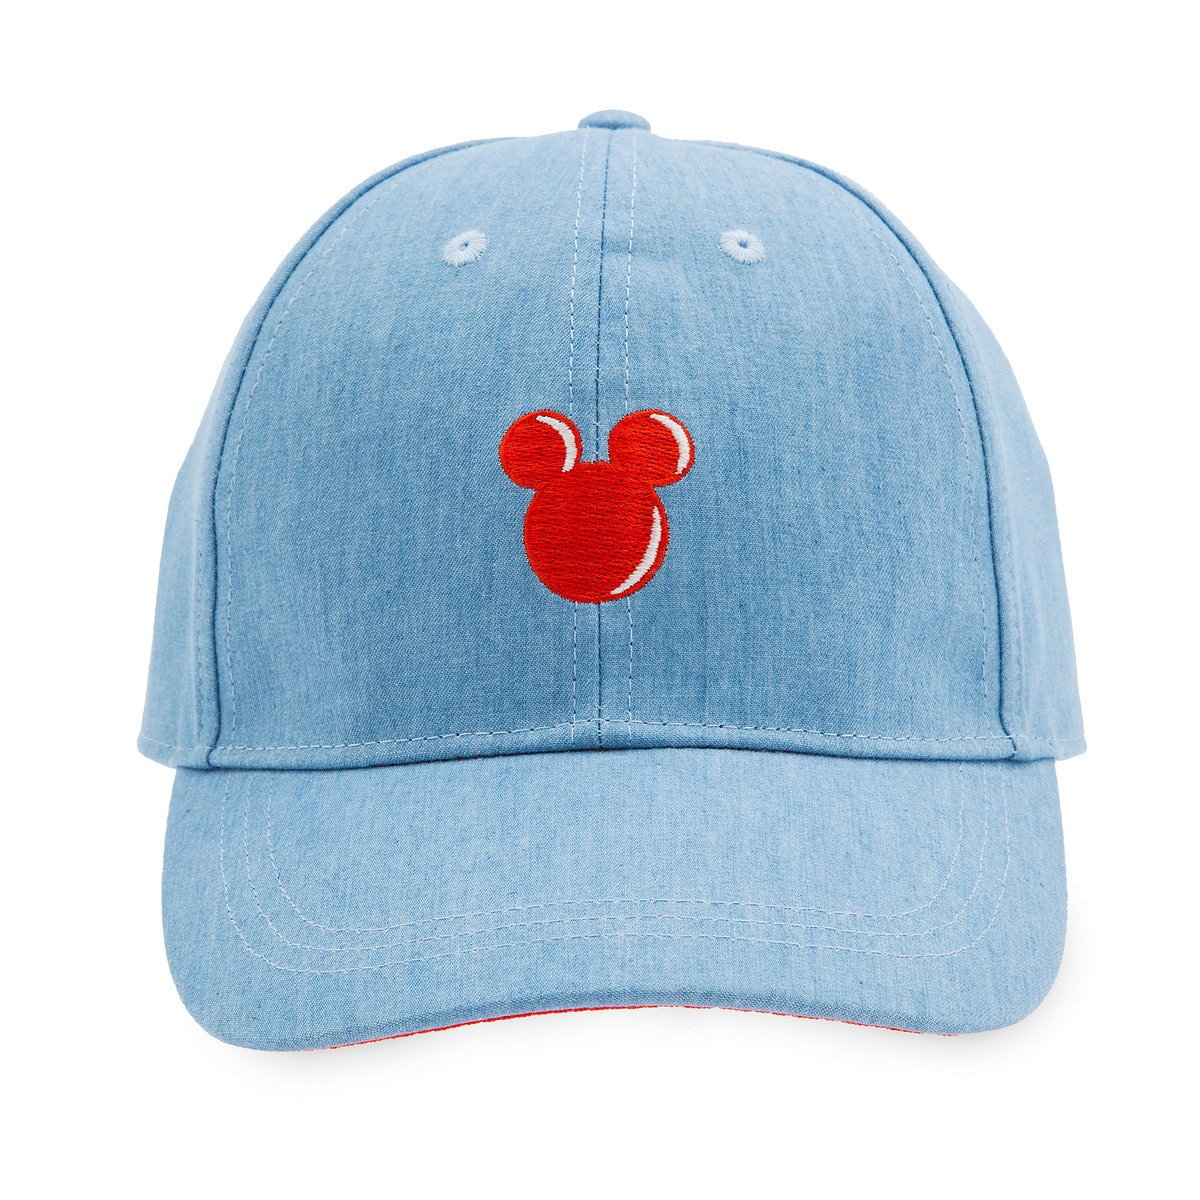 3c067458 Product Image of Mickey Mouse Summer Fun Baseball Cap for Adults # 1